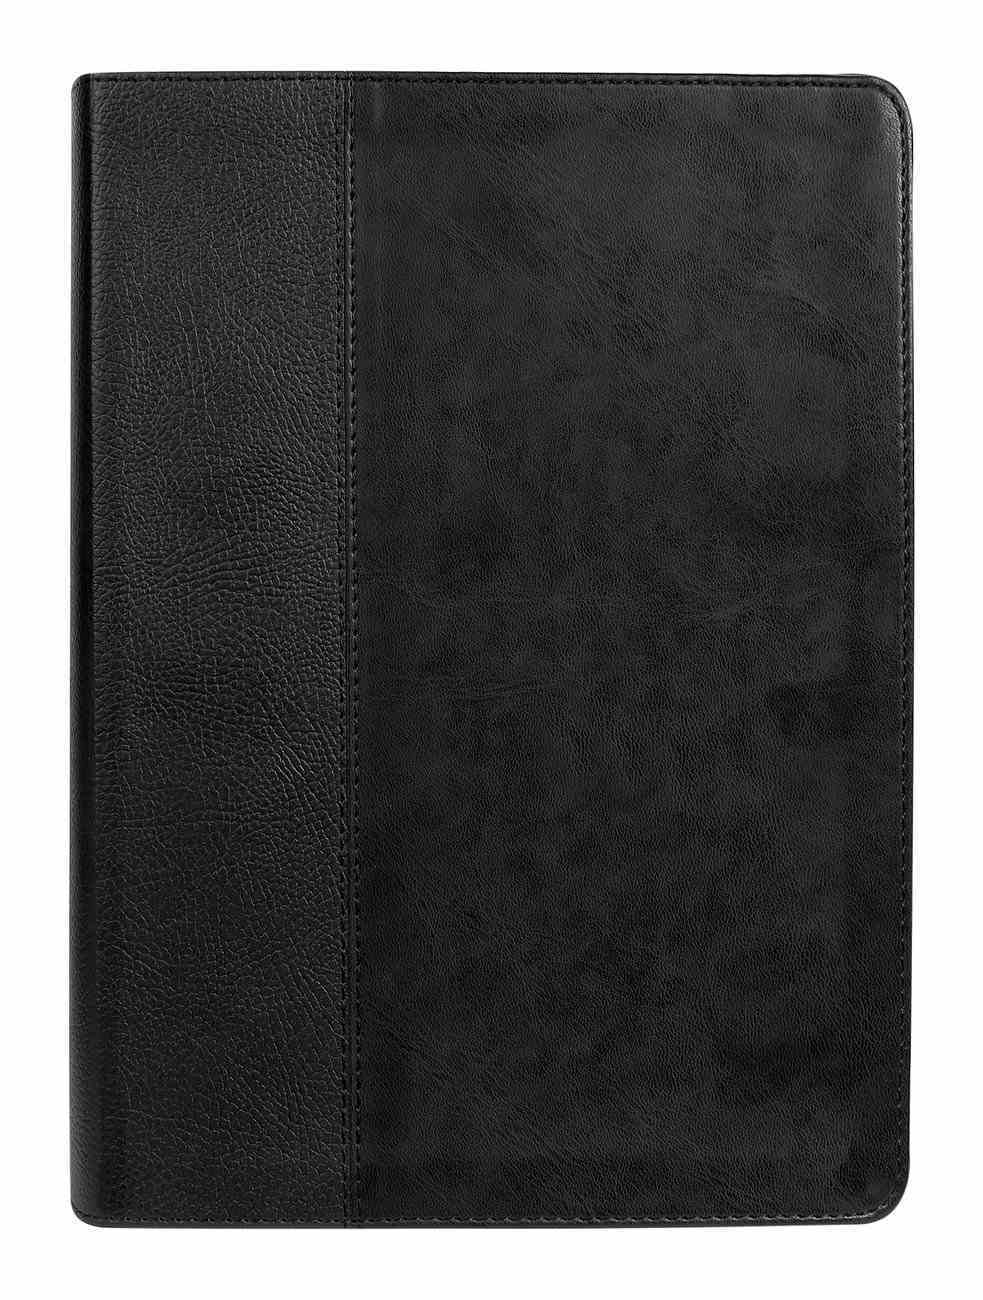 NKJV End-Of-Verse Reference Bible Personal Size Large Print Black Indexed (Red Letter Edition) Premium Imitation Leather